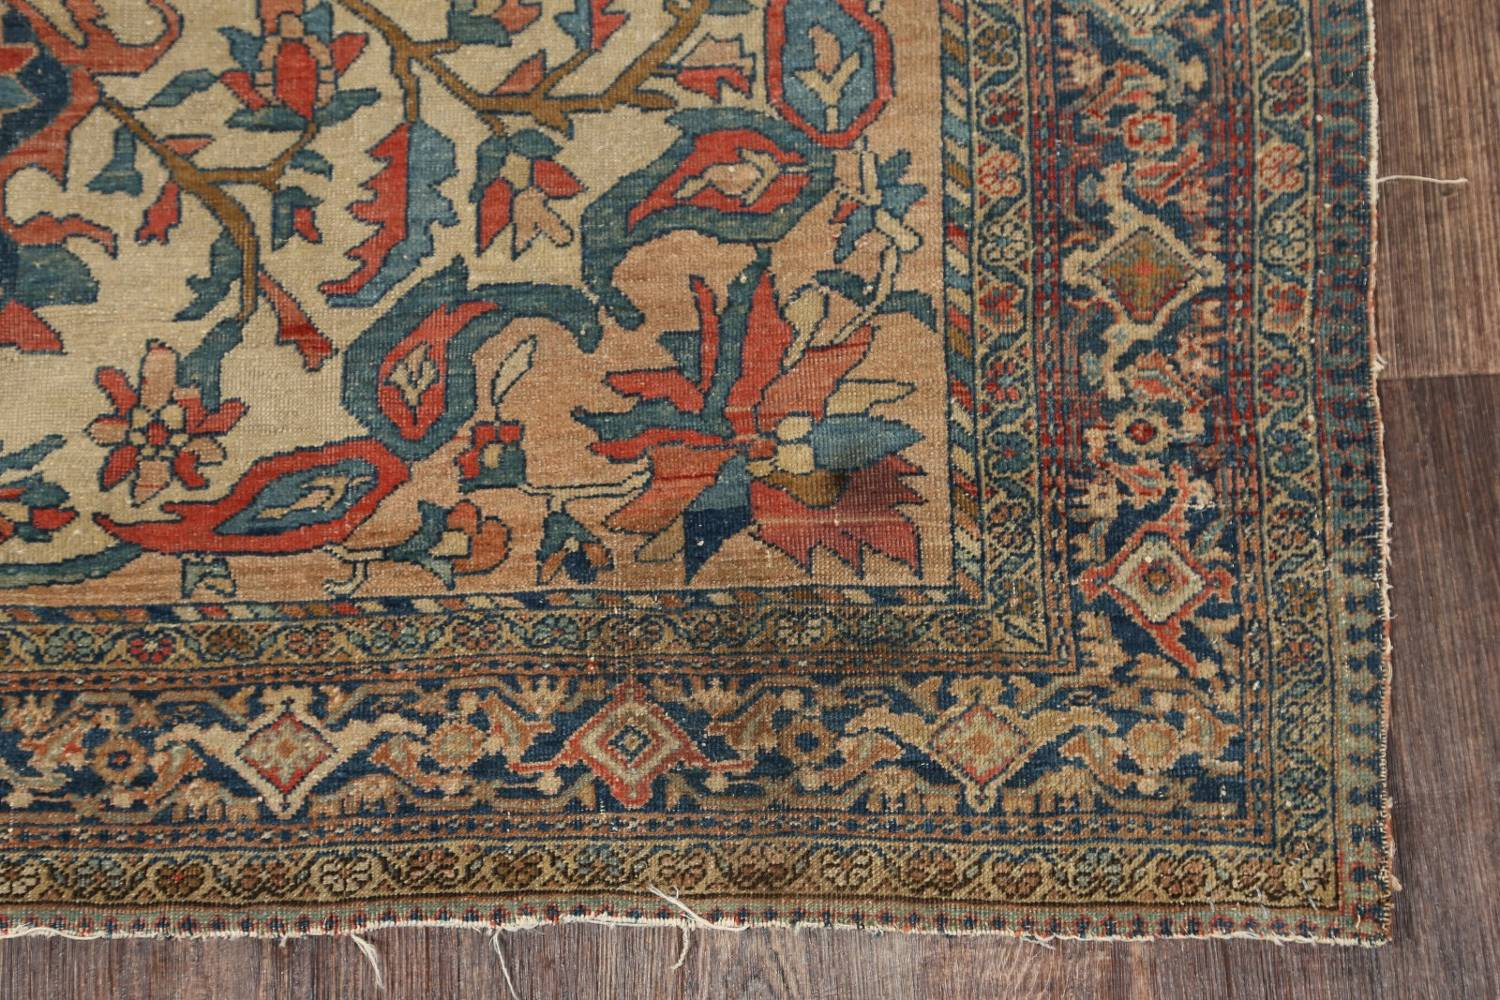 Pre-1900 Antique Floral Sarouk Farahan Persian Hand-Knotted 4'x7' Wool Area Rug image 6